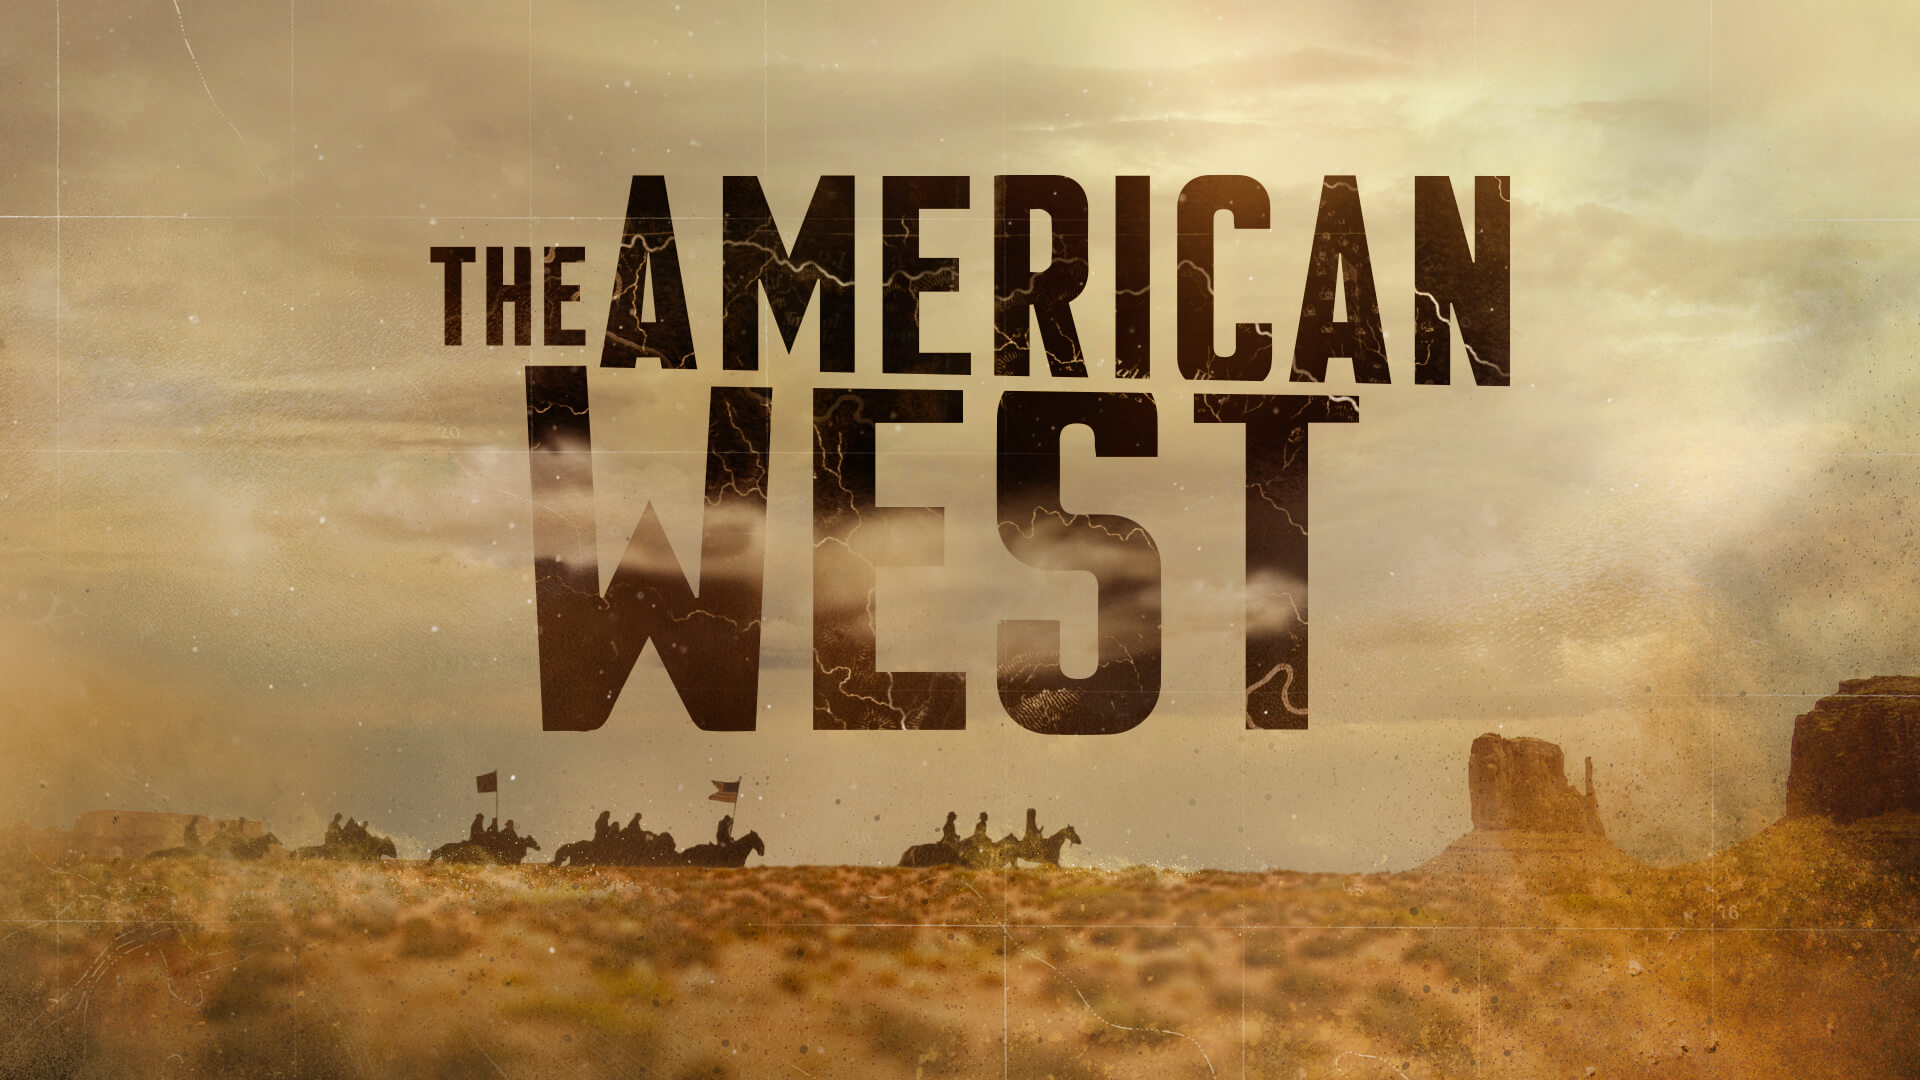 151030_AMC_THEWEST_TITLE_L_SML.jpg